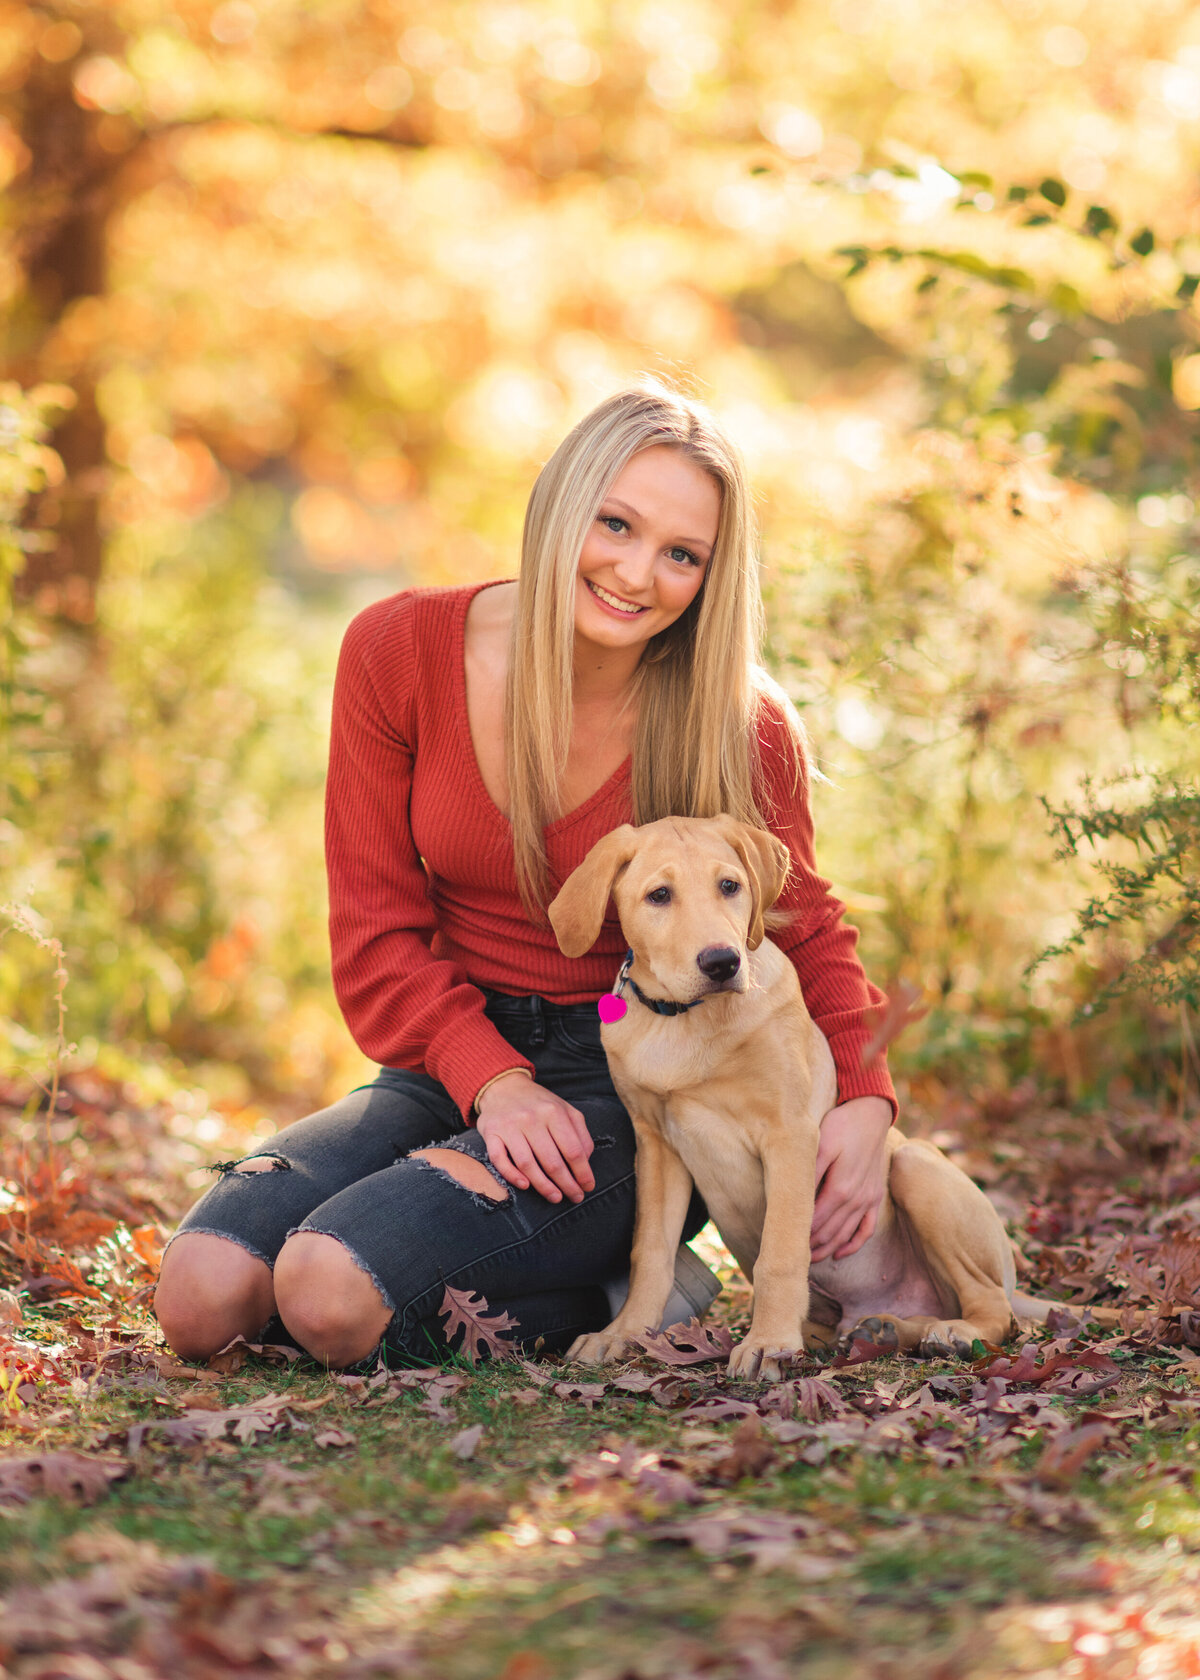 Des-Moines-Iowa-Senior-Photographer-Theresa-Schumacher-Photography-Nature-Fall-Puppy